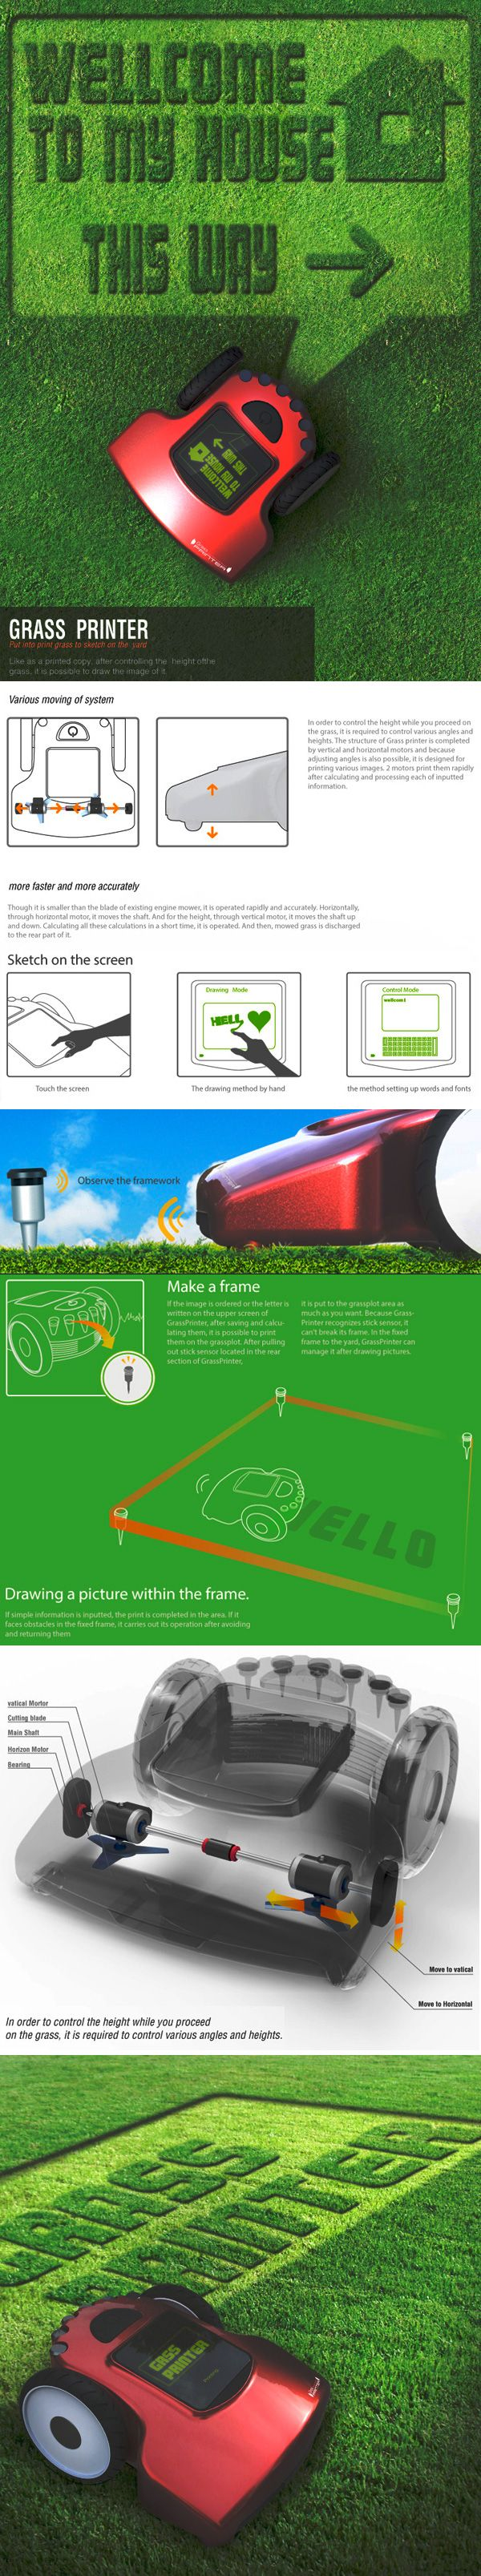 Grass Printer For Lawnly Creatives by yank design